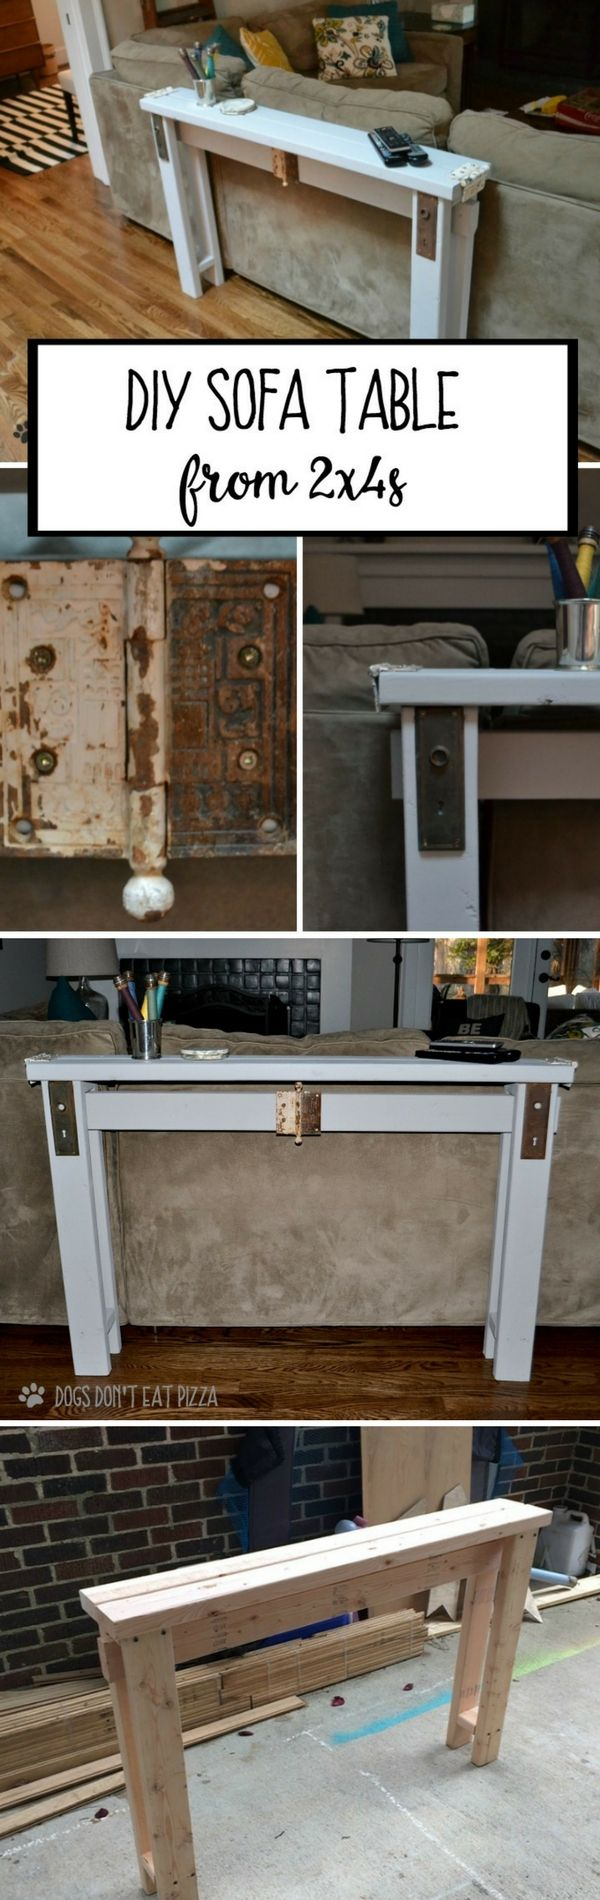 Check out how to make a DIY wooden sofa table from 2x4s @istandarddesign